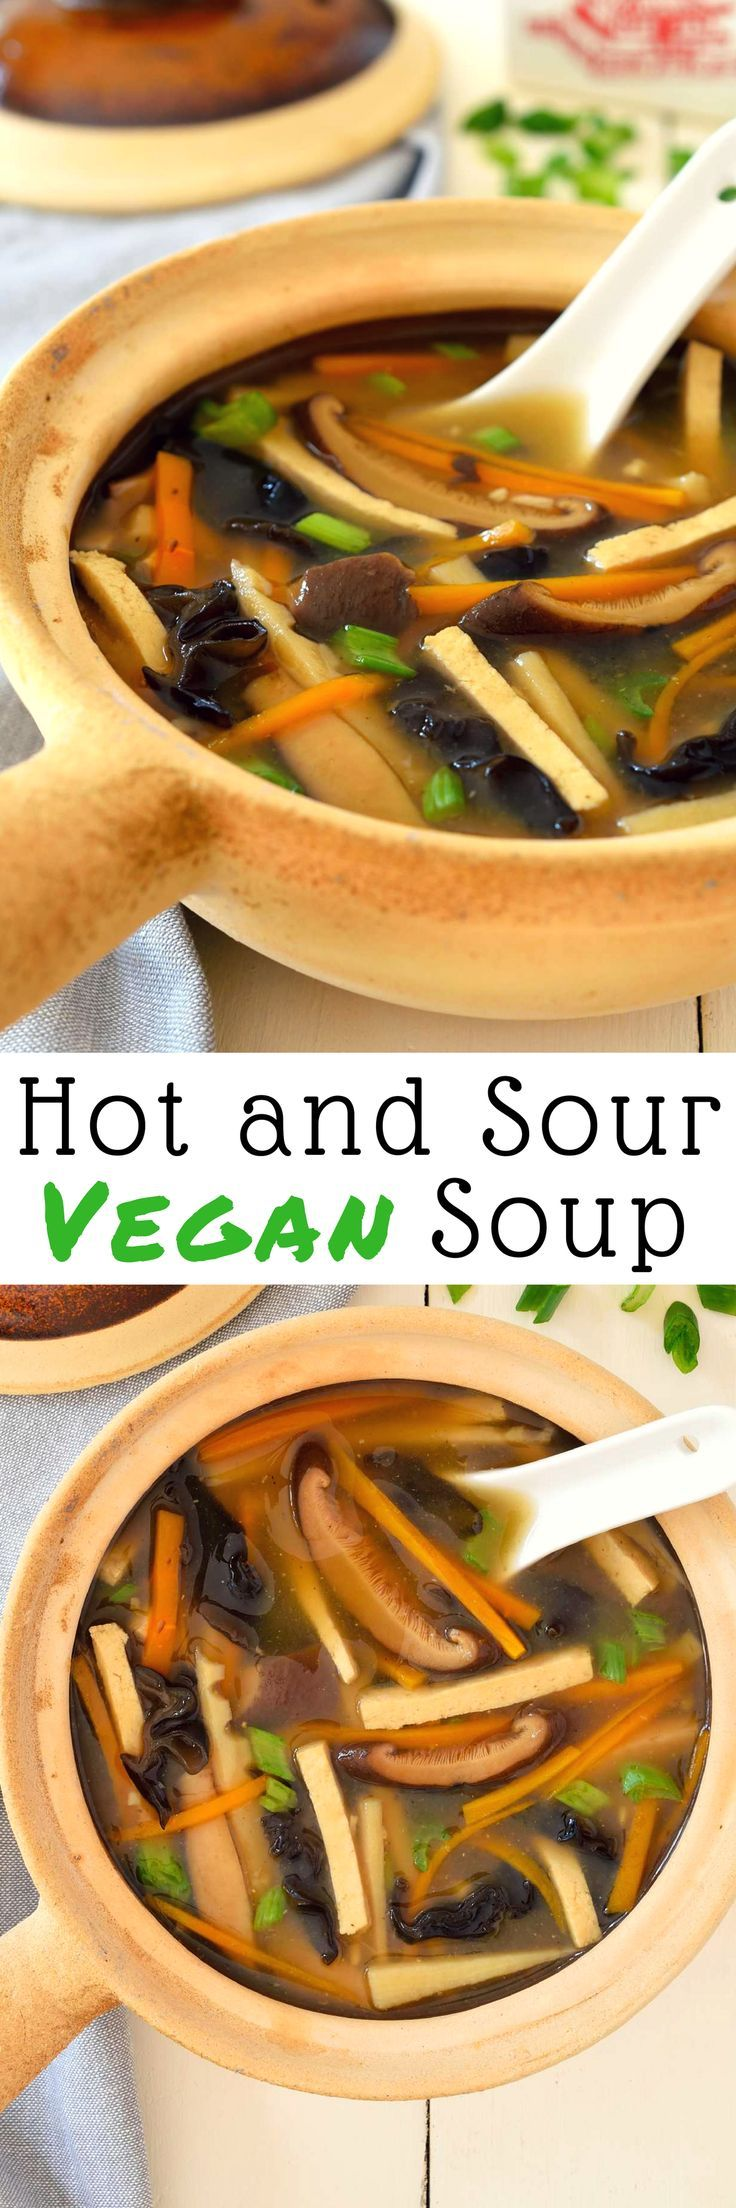 Vegan hot and sour soup is a quick and easy soup to warm you up on a chilly evening. Even better than takeout because it's totally plant-based!